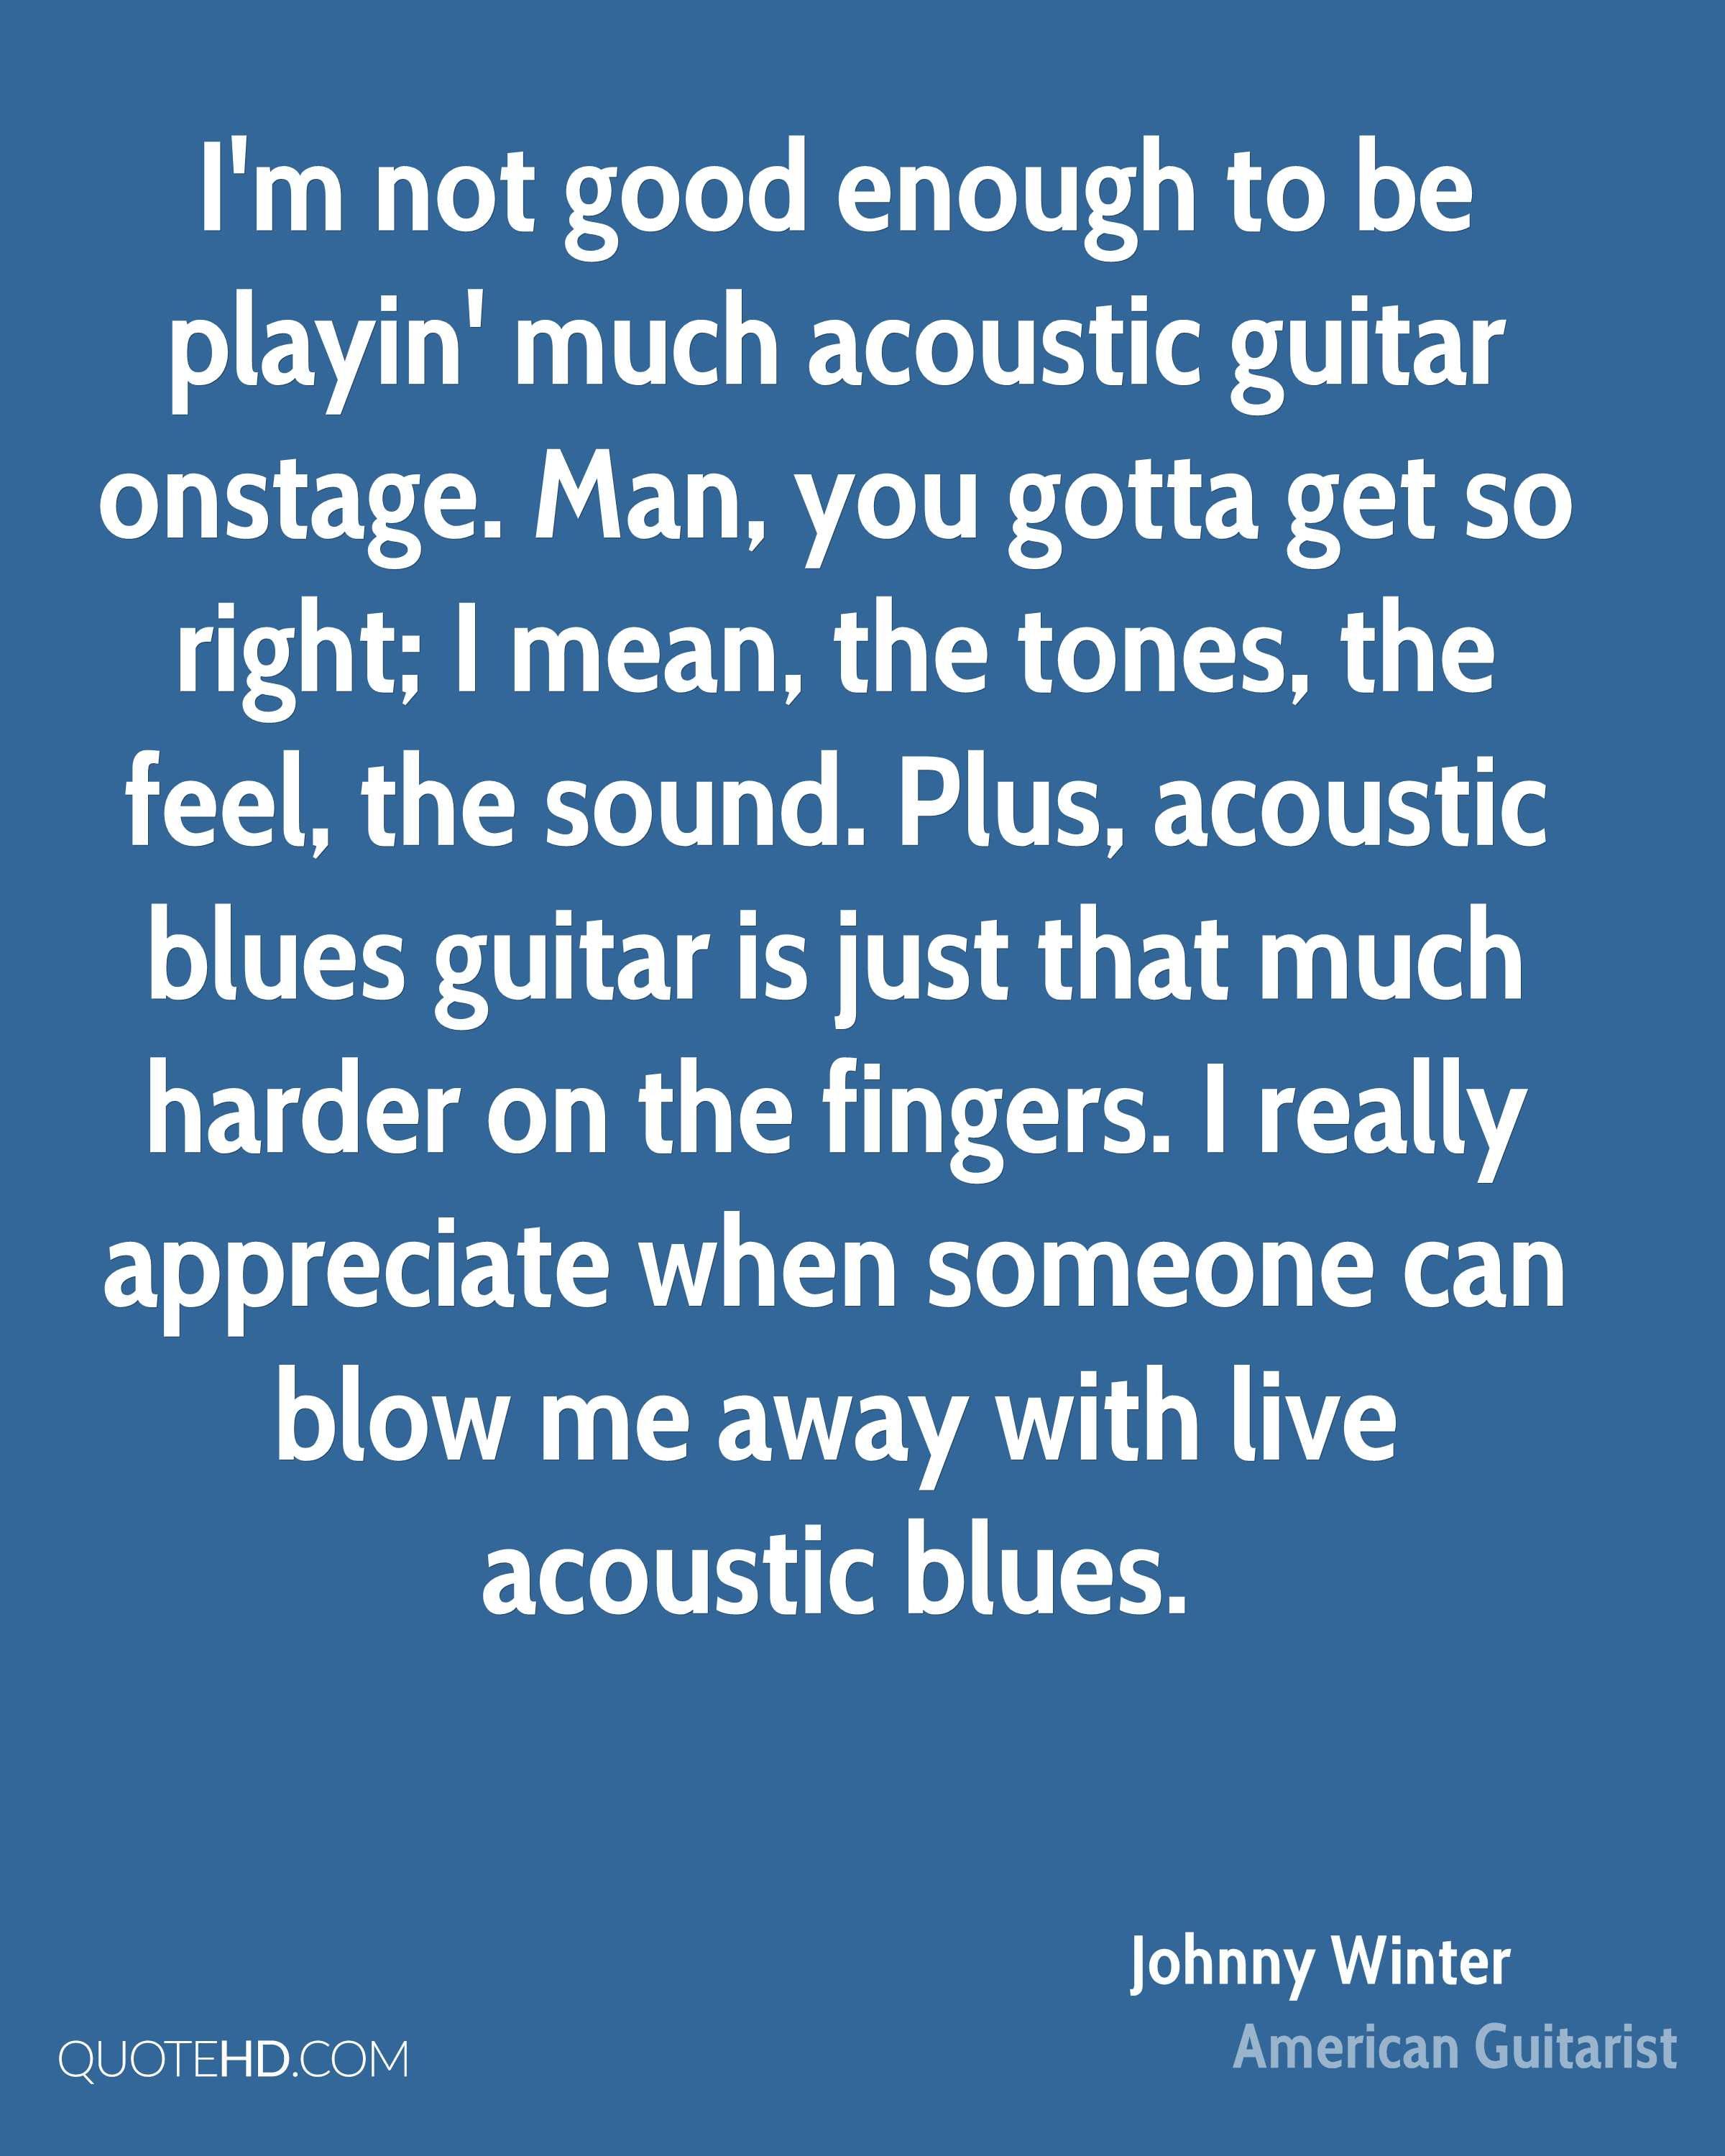 Johnny Winter Quotes | QuoteHD